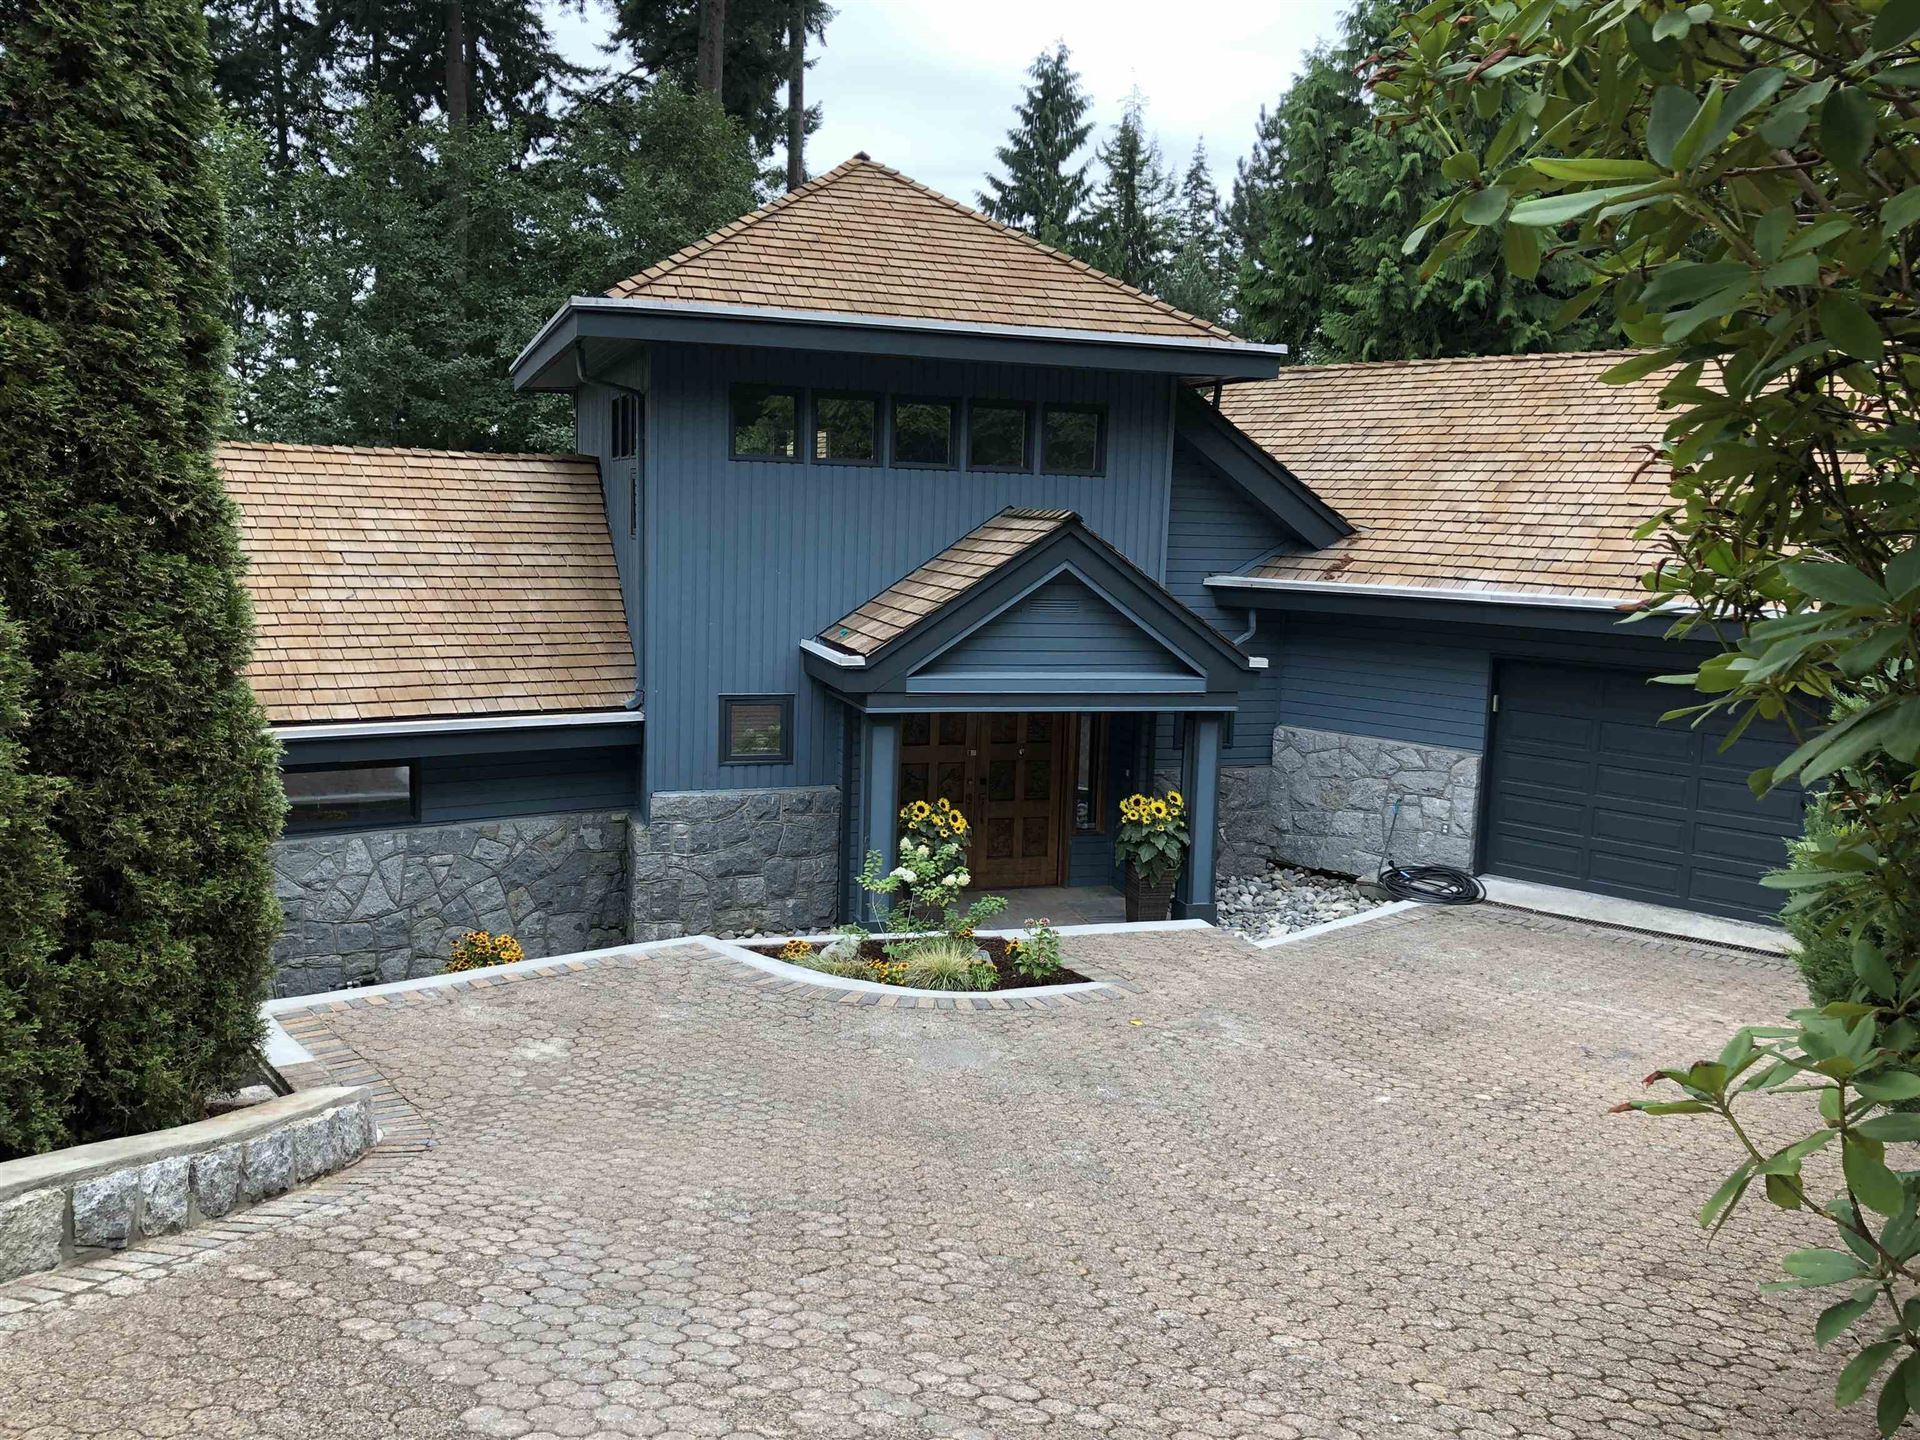 Photo for 1051 DEMPSEY ROAD, North Vancouver, BC V7K 3C3 (MLS # R2612106)